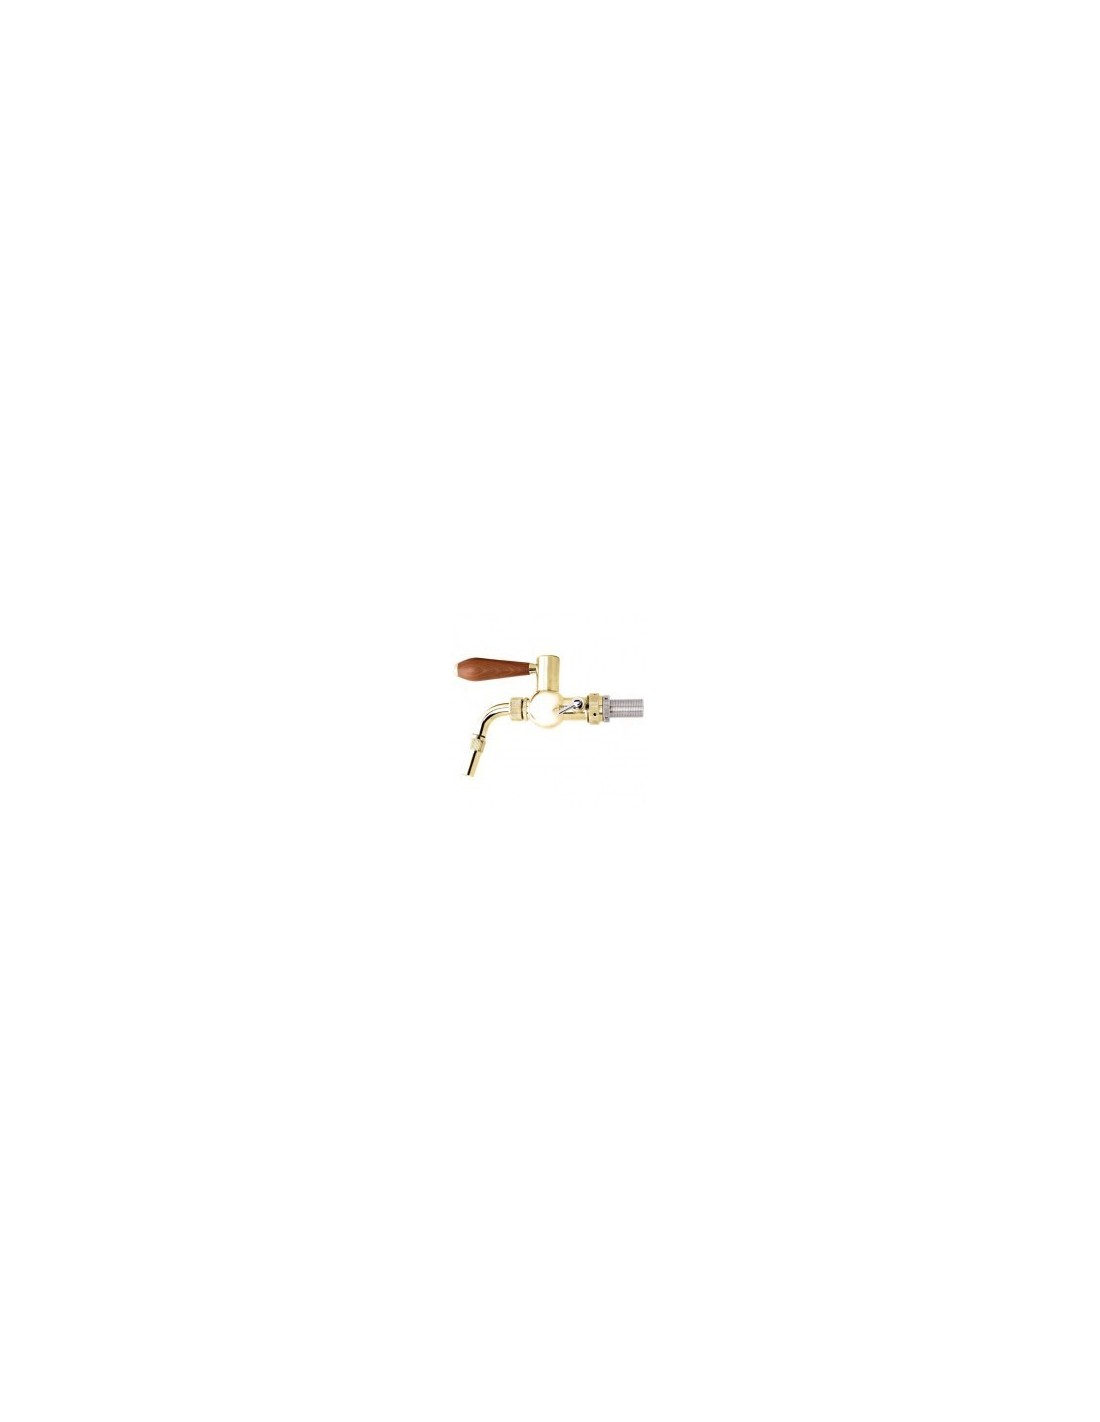 """KOH02111 - Beer tap """"Baroque"""" with PVD finish 5/8-35 mm, normal spout"""